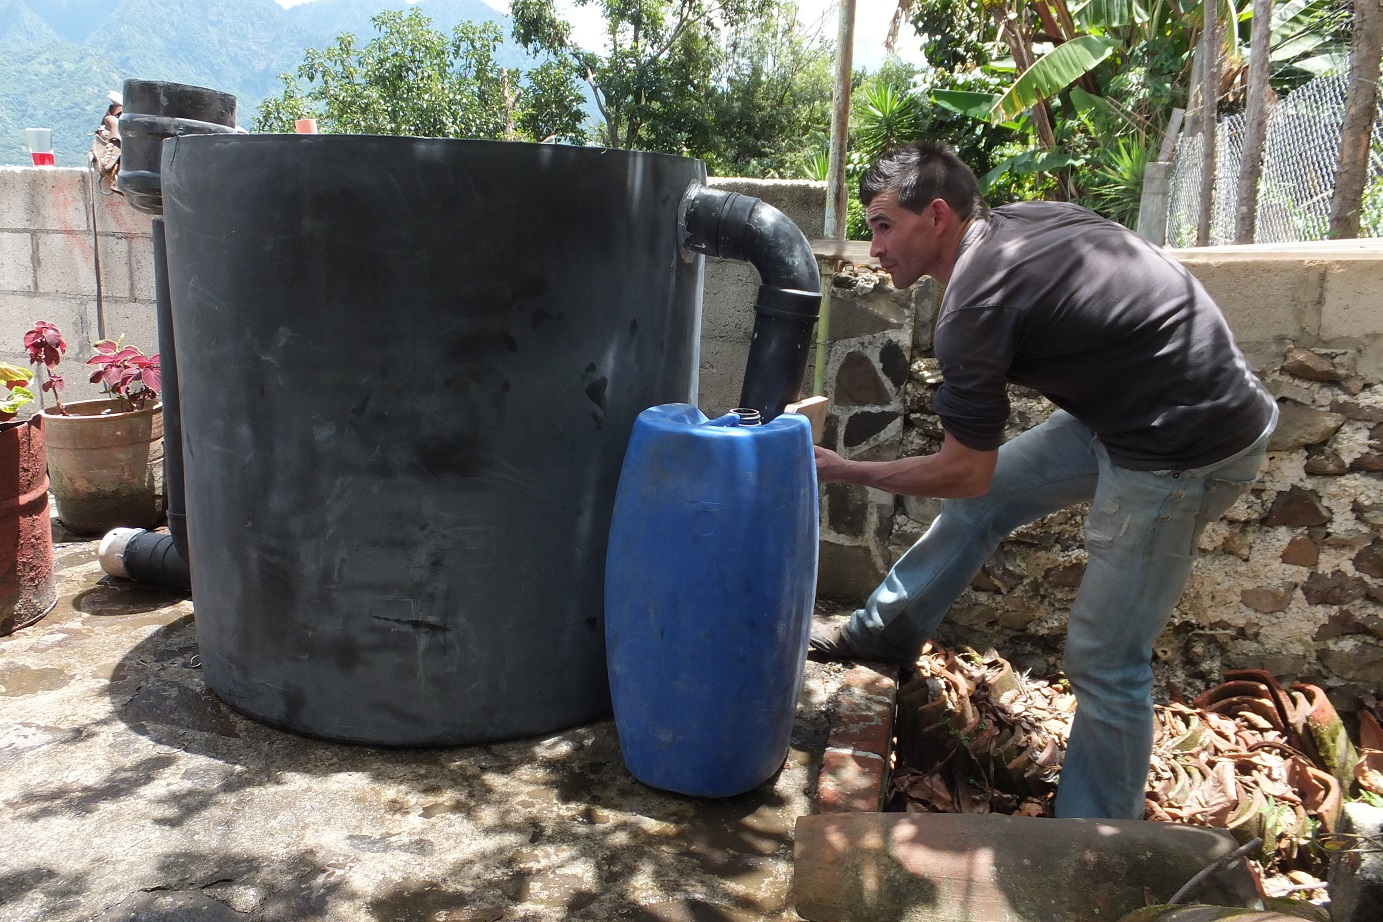 Installation of the Biodigester